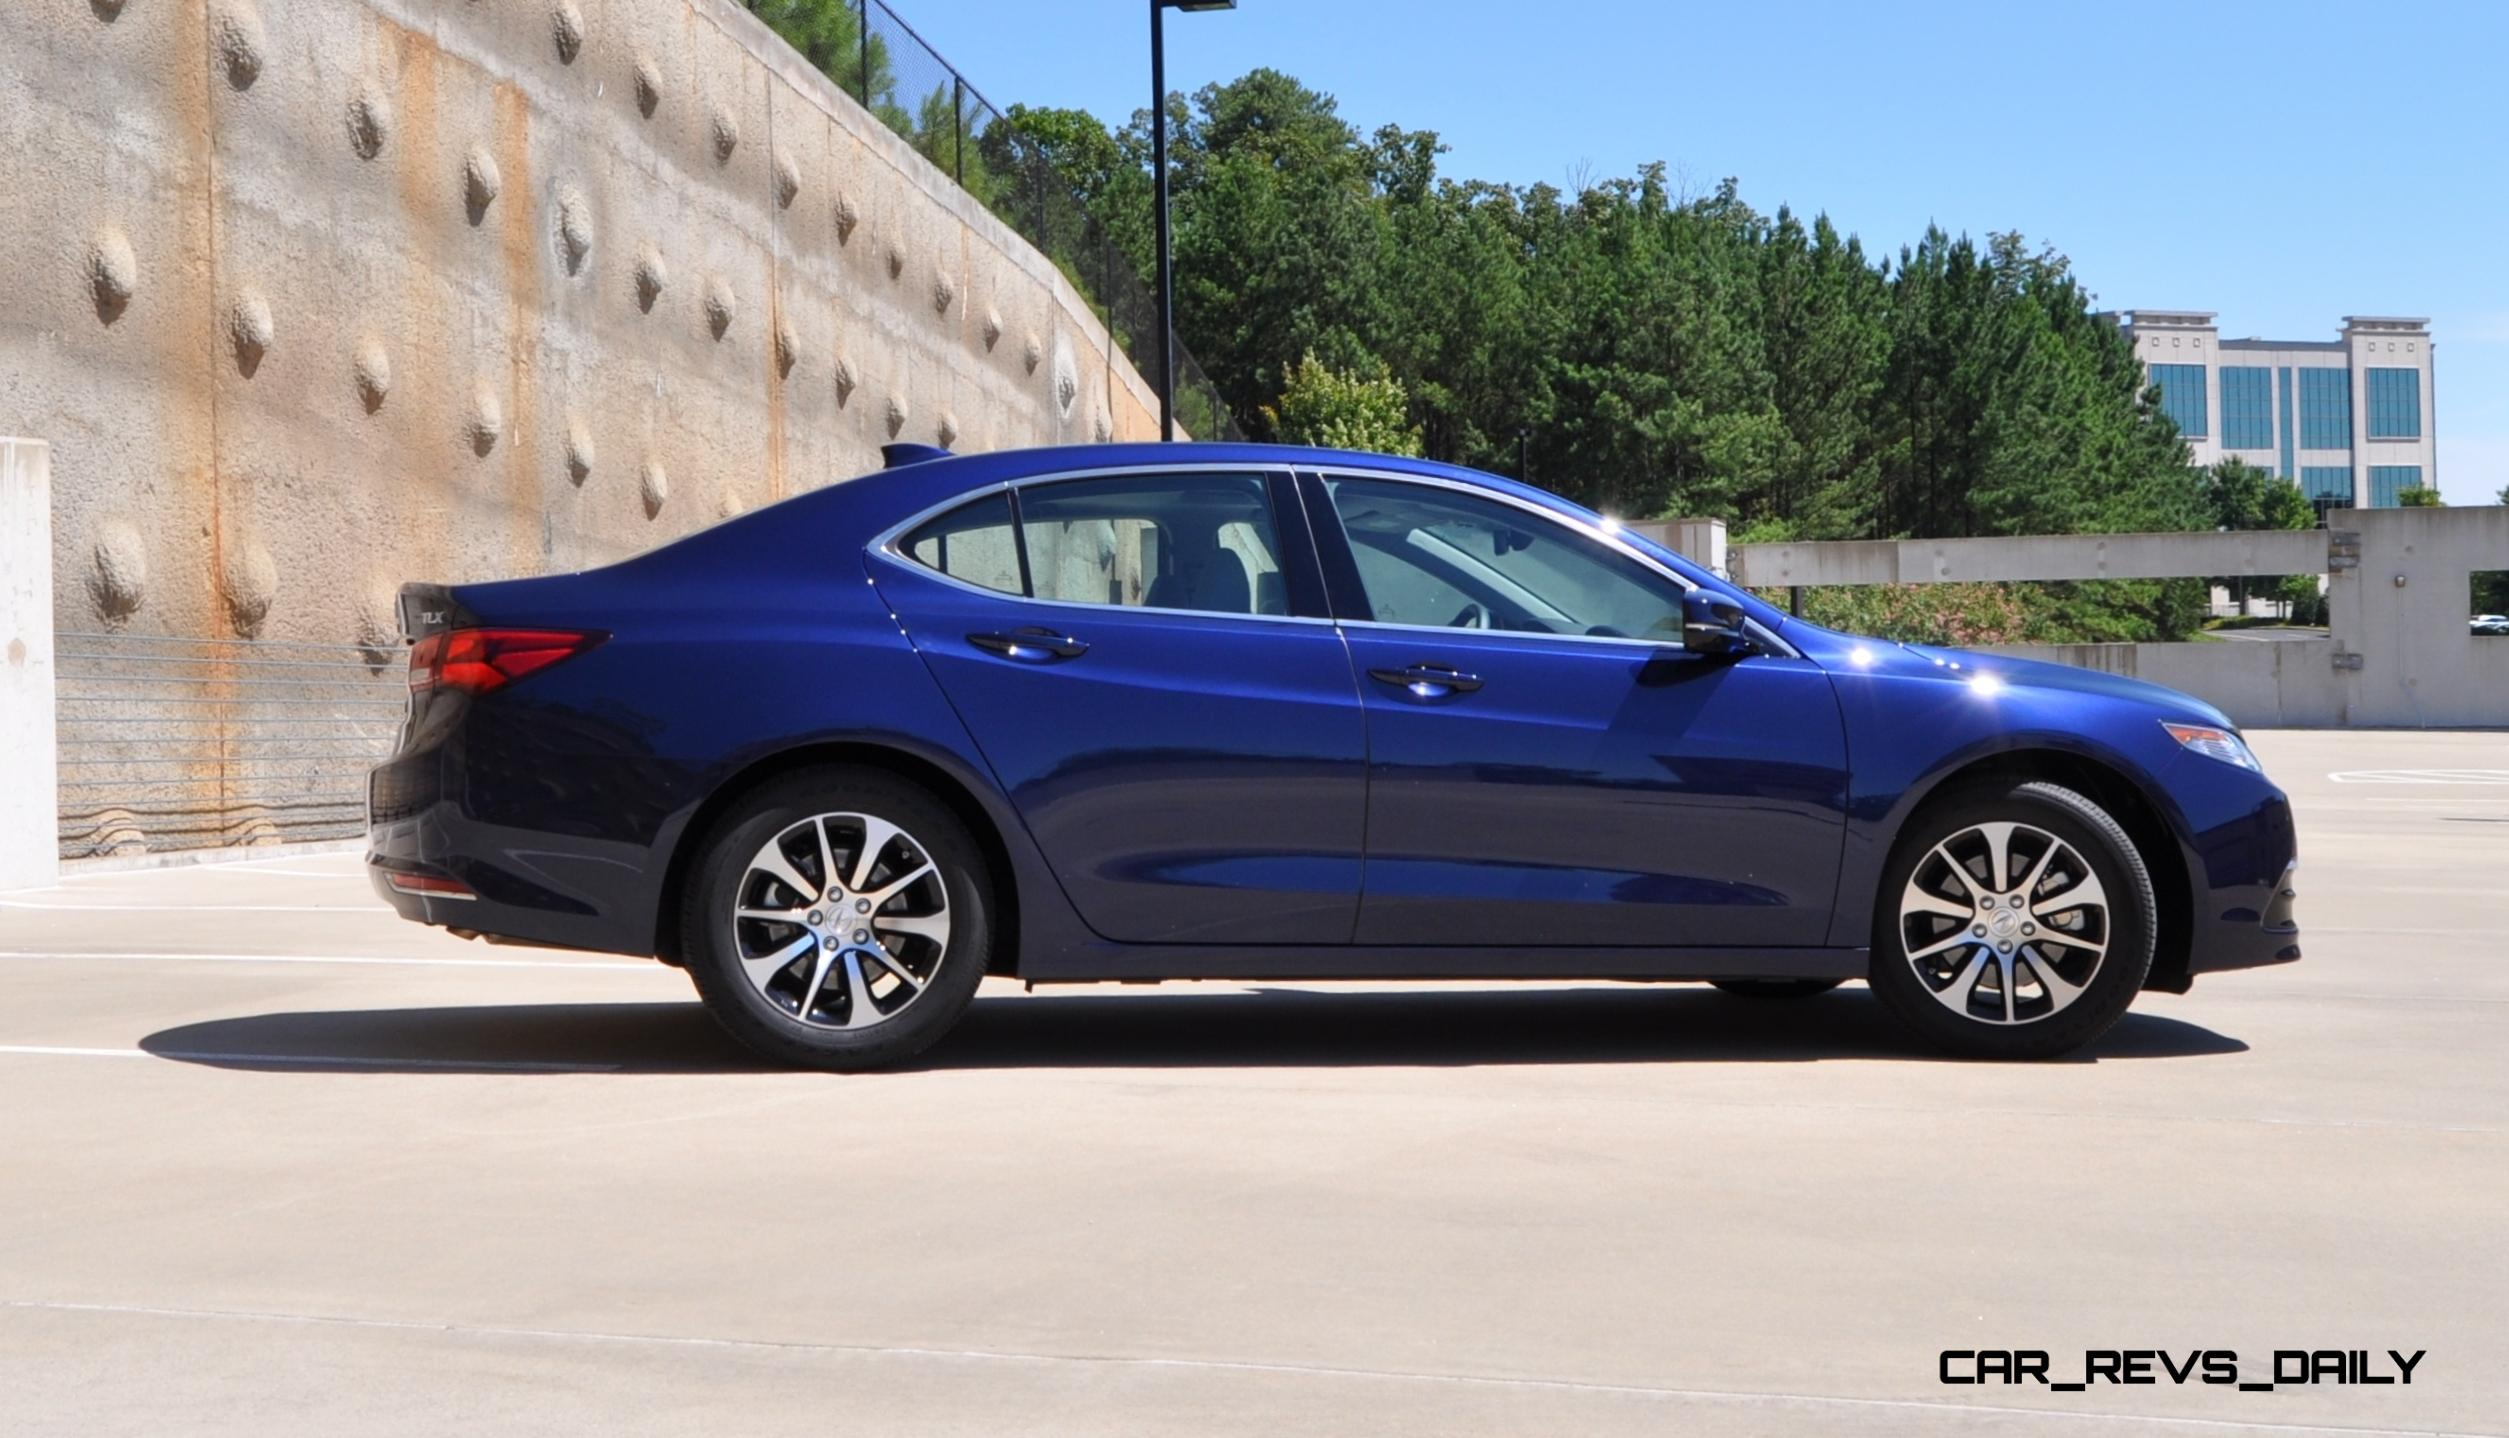 road test review 2015 acura tlx 2 4l is seriously good fun quick lux and nimble. Black Bedroom Furniture Sets. Home Design Ideas